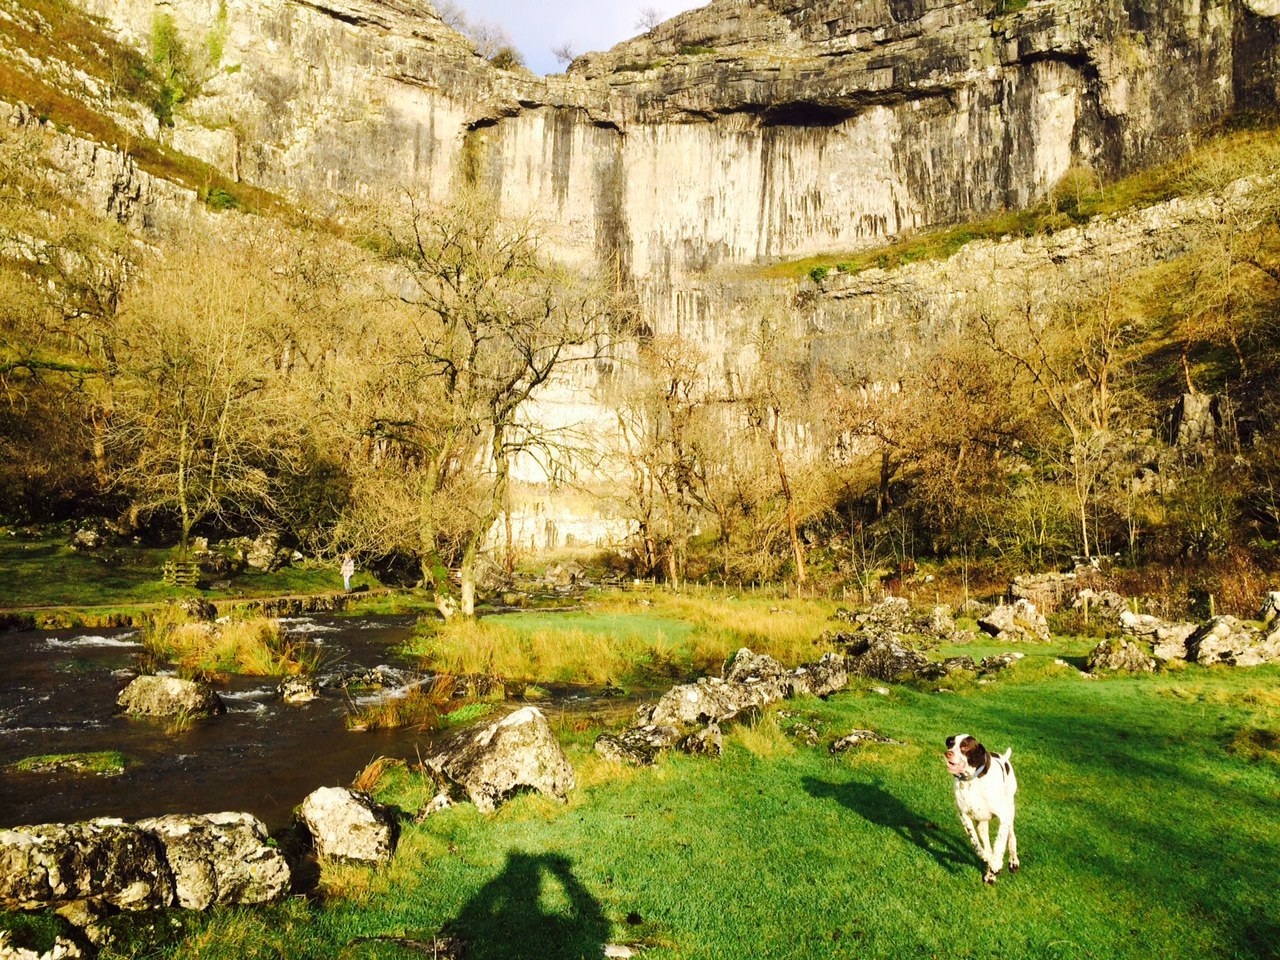 Malham Cove in the Yorkshire Dales